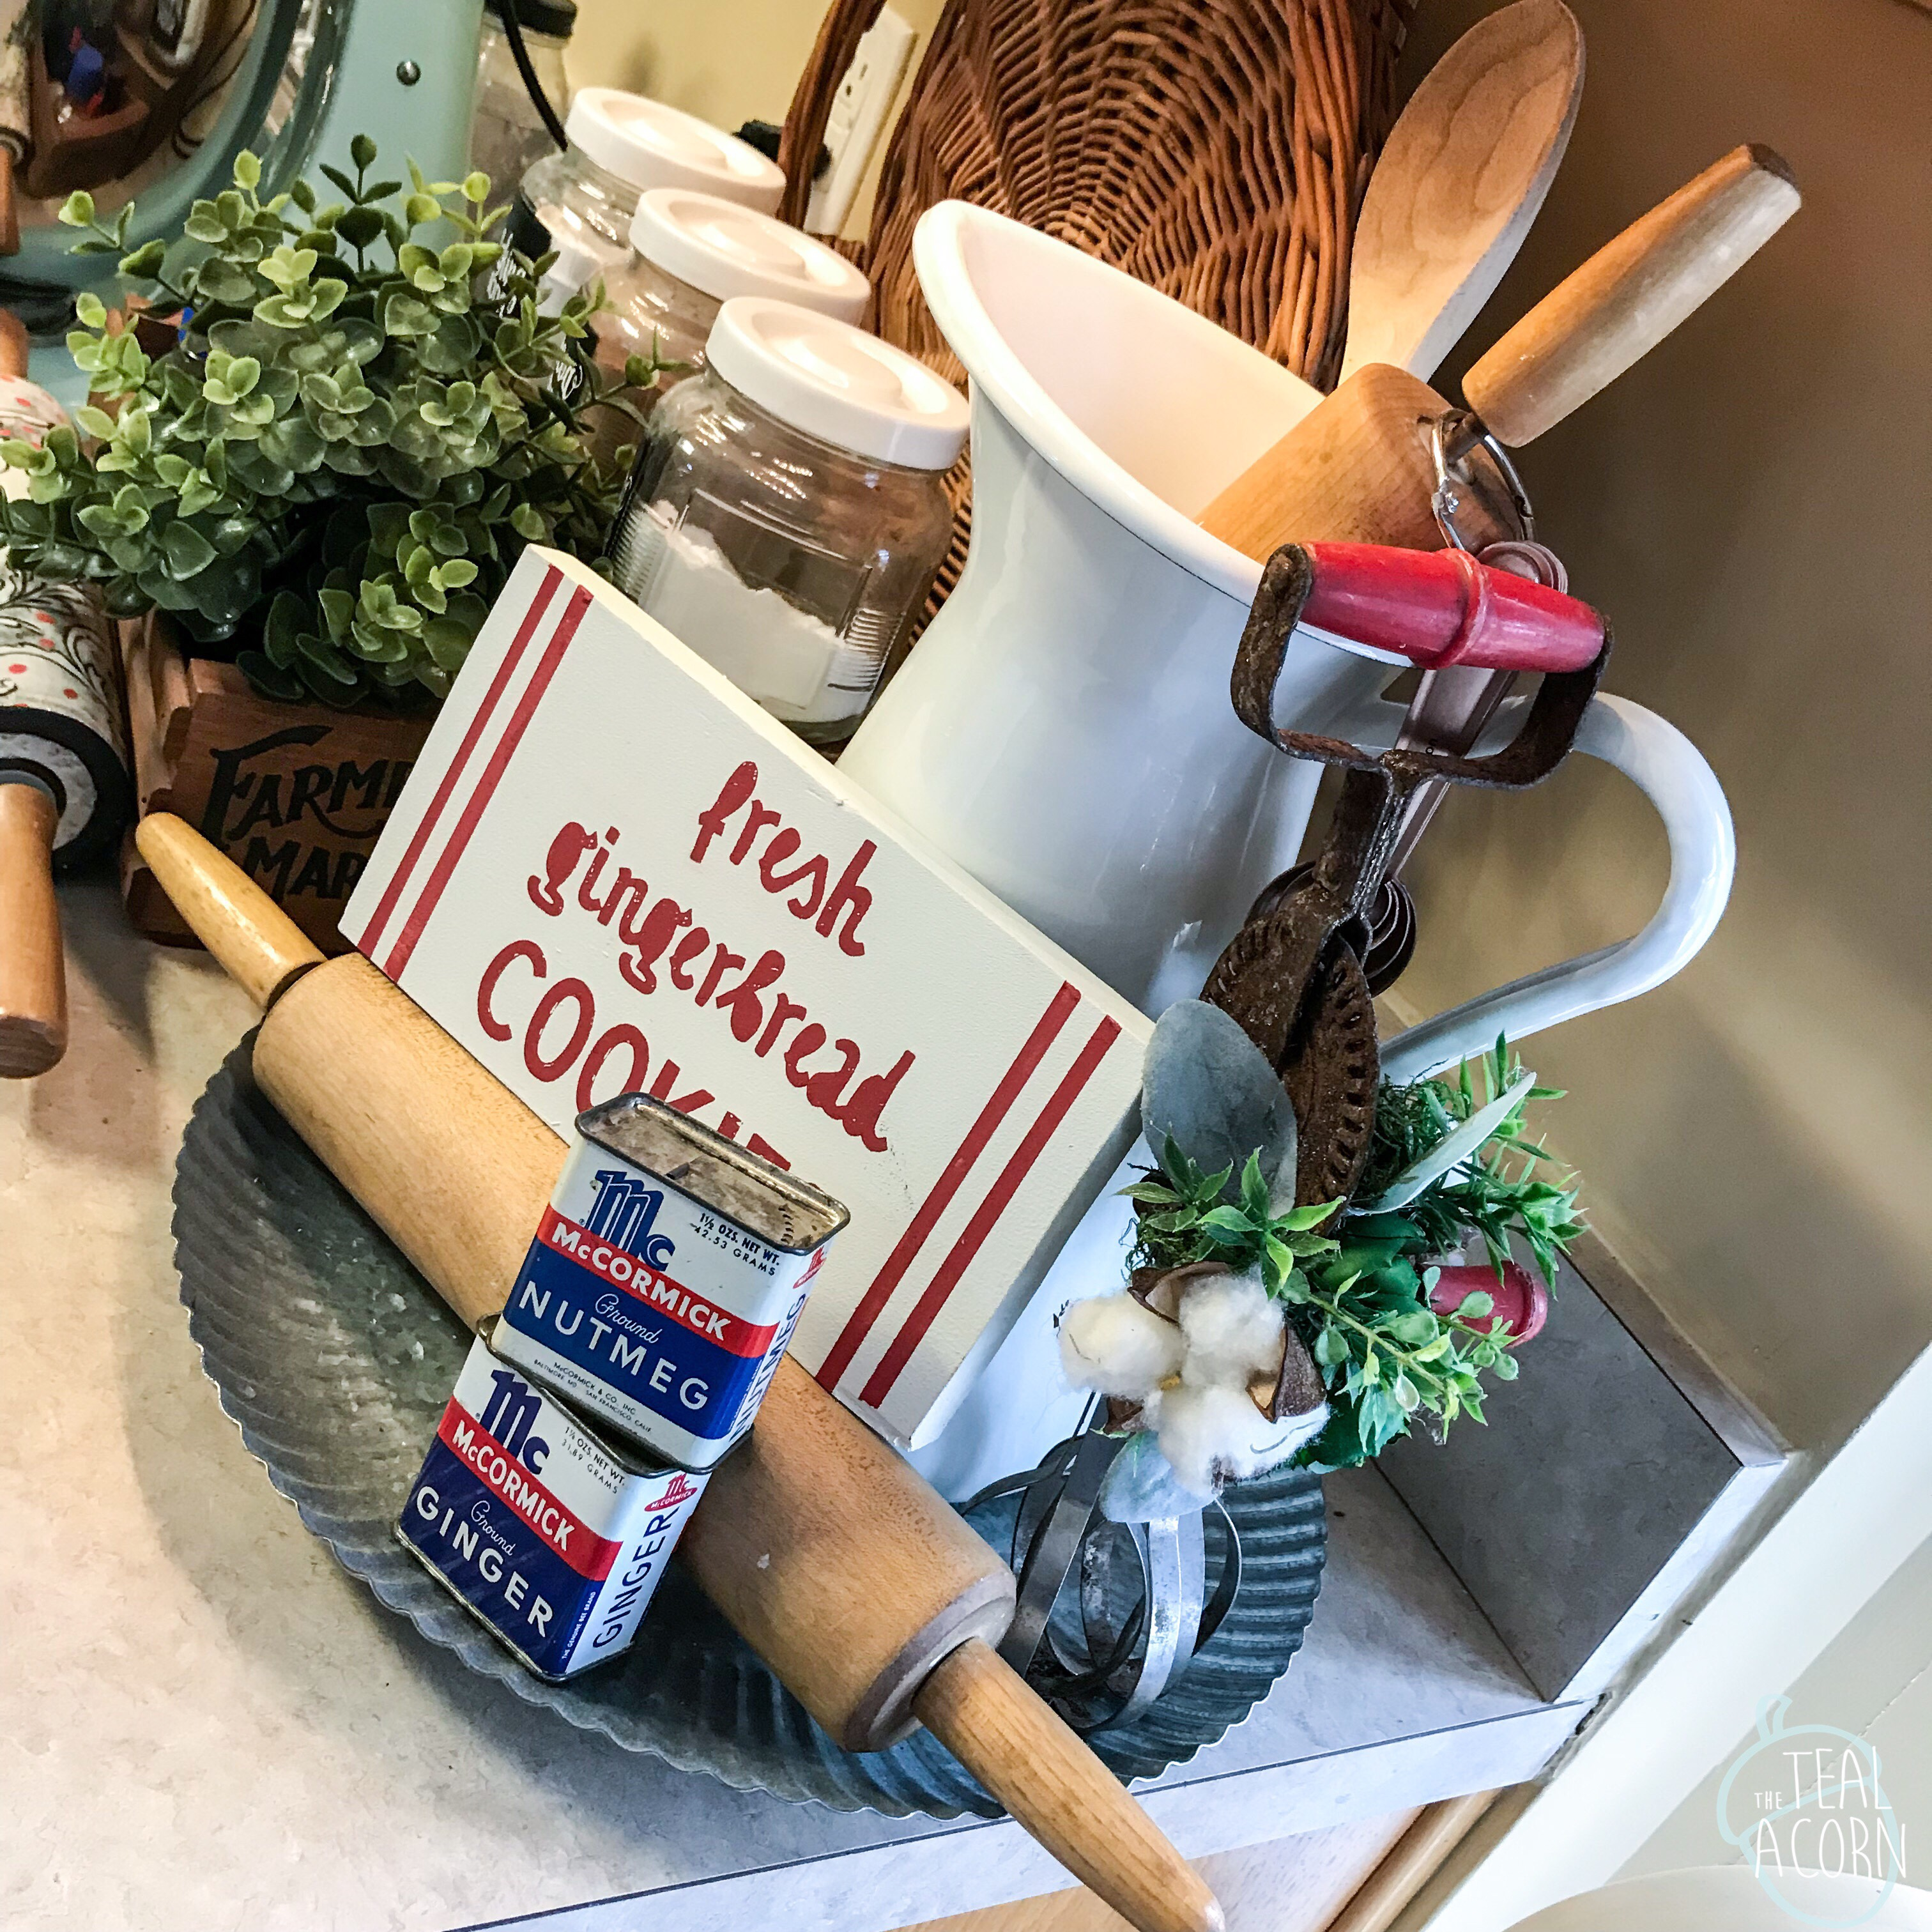 Red and white Christmas farmhouse kitchen decor. Vintage spice tins and hand mixer with cotton stem.